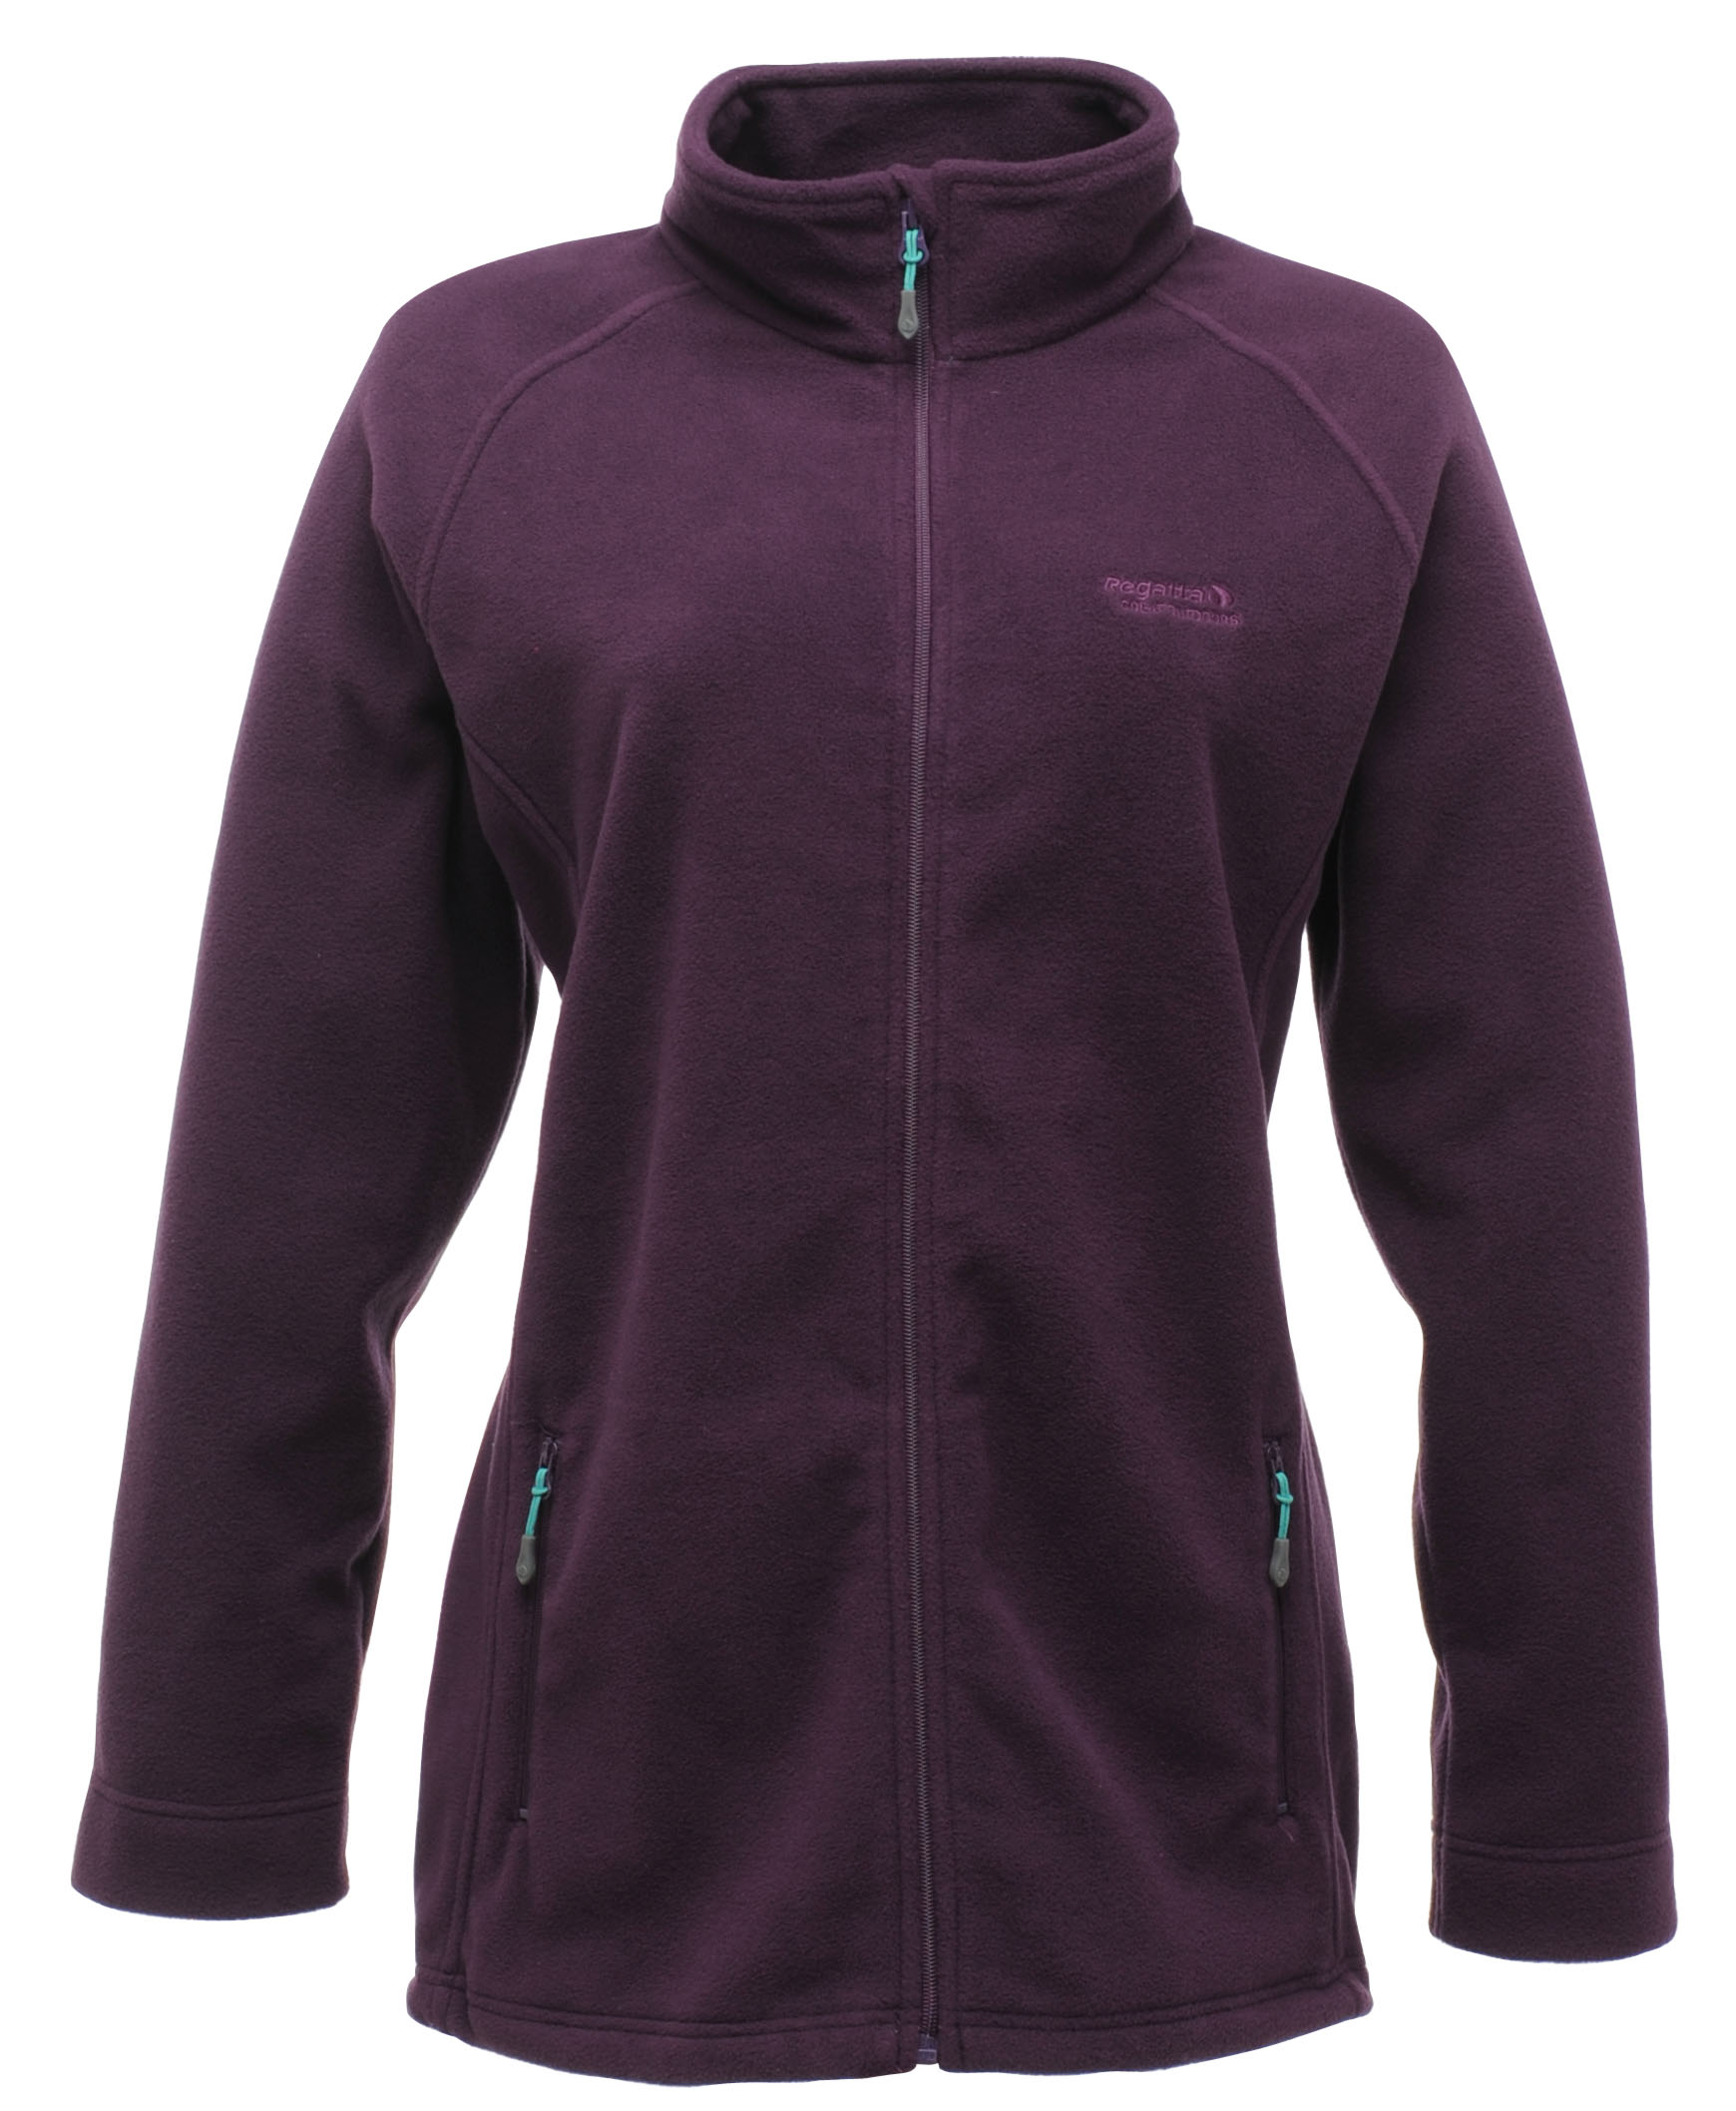 Regatta Cathie Women's Fleece Jacket - Purple Cordial